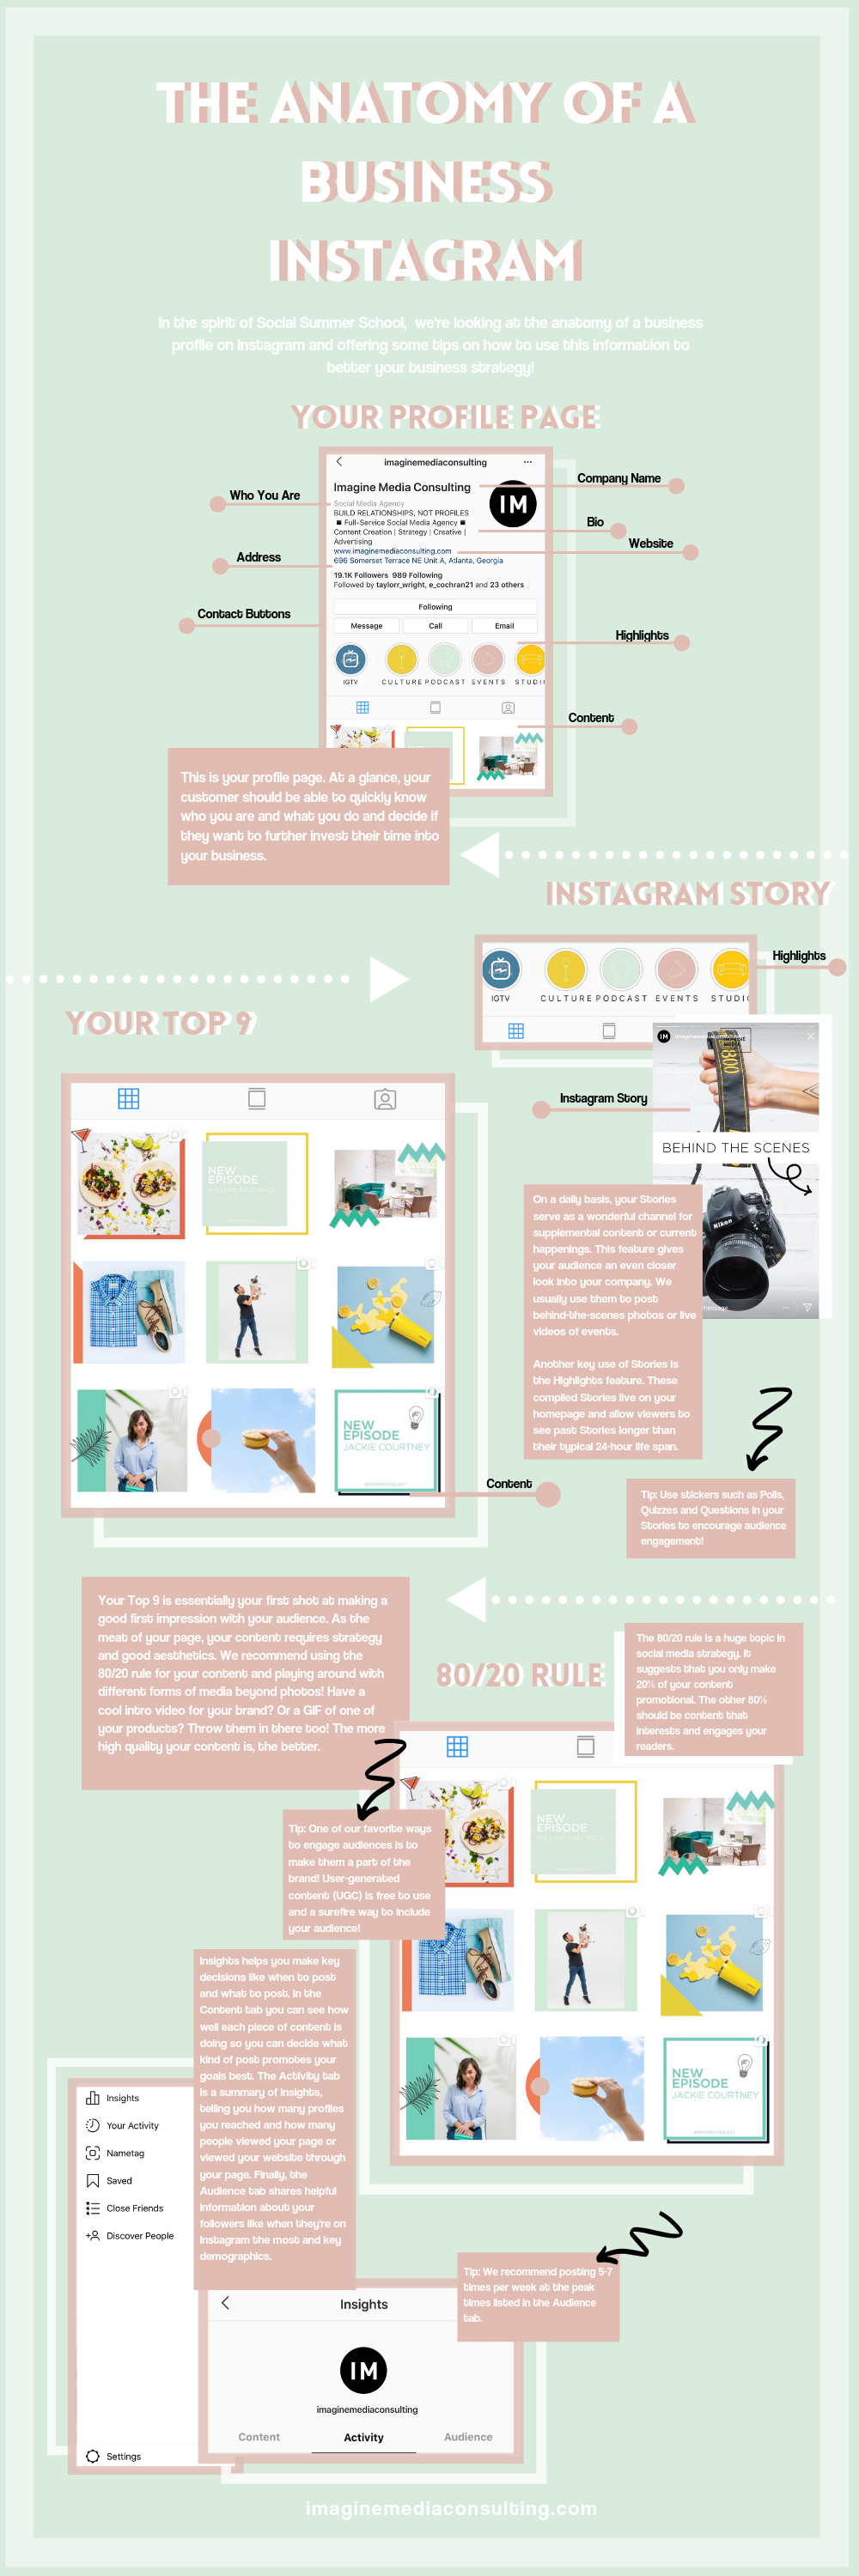 Anatomy of a Business Instagram Infographic (1).png